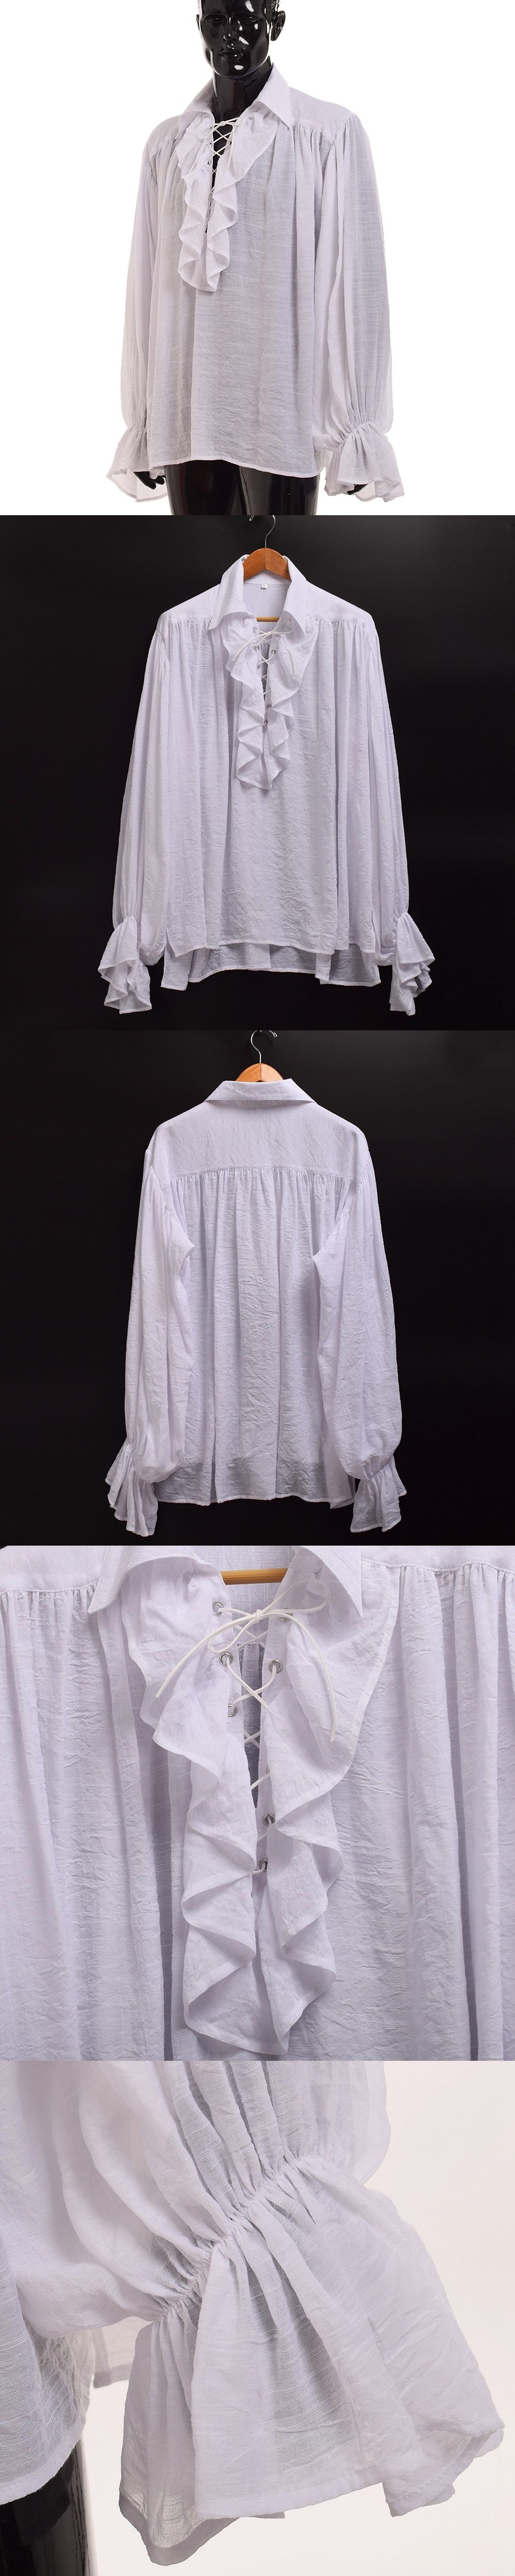 9f359a1b79a4f0 Vintage Men White Ruffled Pirate Shirt Medieval Renaissance Poet Vampire  Colonial Jabot Blouse Long Sleeve Clothing